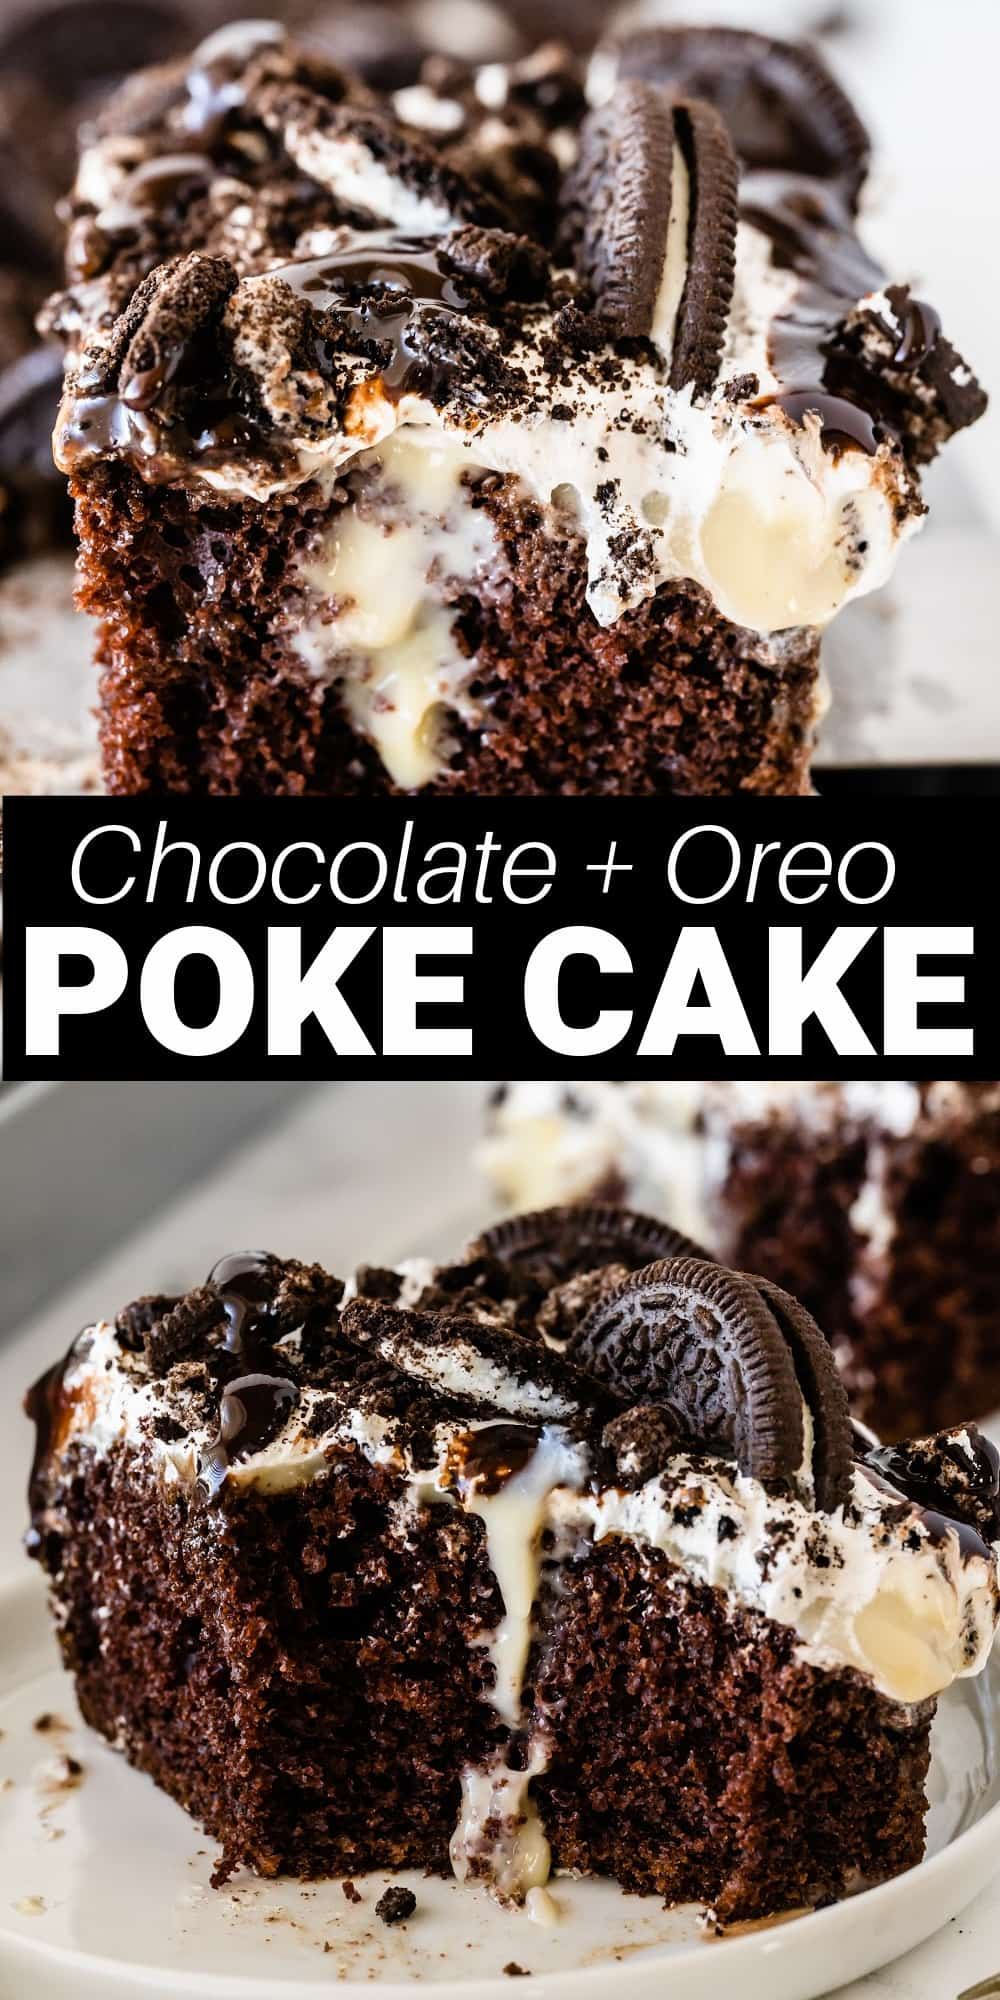 This Oreo poke cake is an easy and delicious moist chocolate cake that's loaded with cream pudding and topped with a whipped topping, Oreos and chocolate cause. It's an Oreo-lovers dream and is perfect for a birthday party, holiday, or a get together with family and friends.